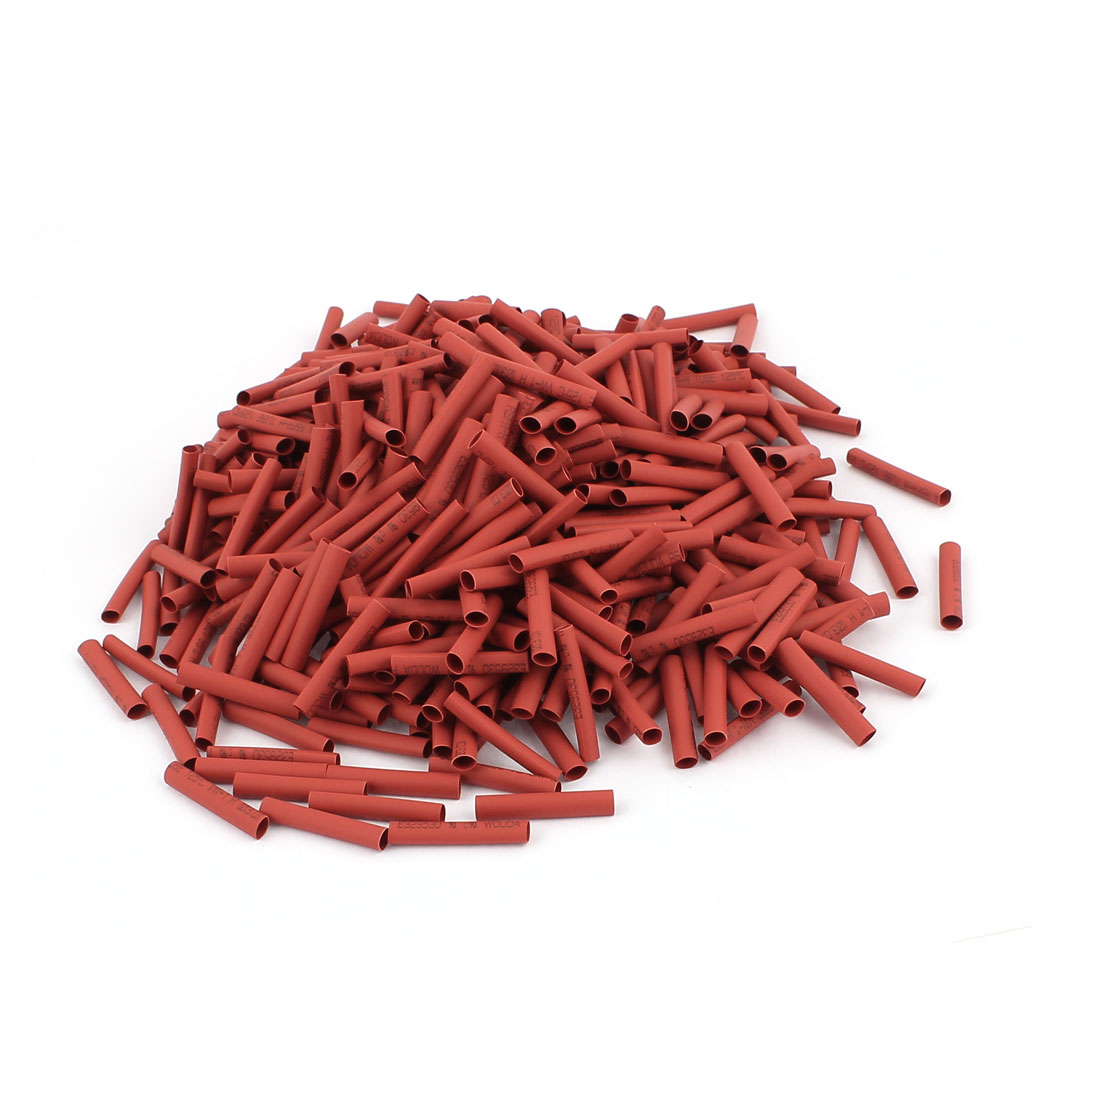 25mm Long Electrical Connection Cable Sleeve Heat Shrink Wrap Tubing Red 800Pcs